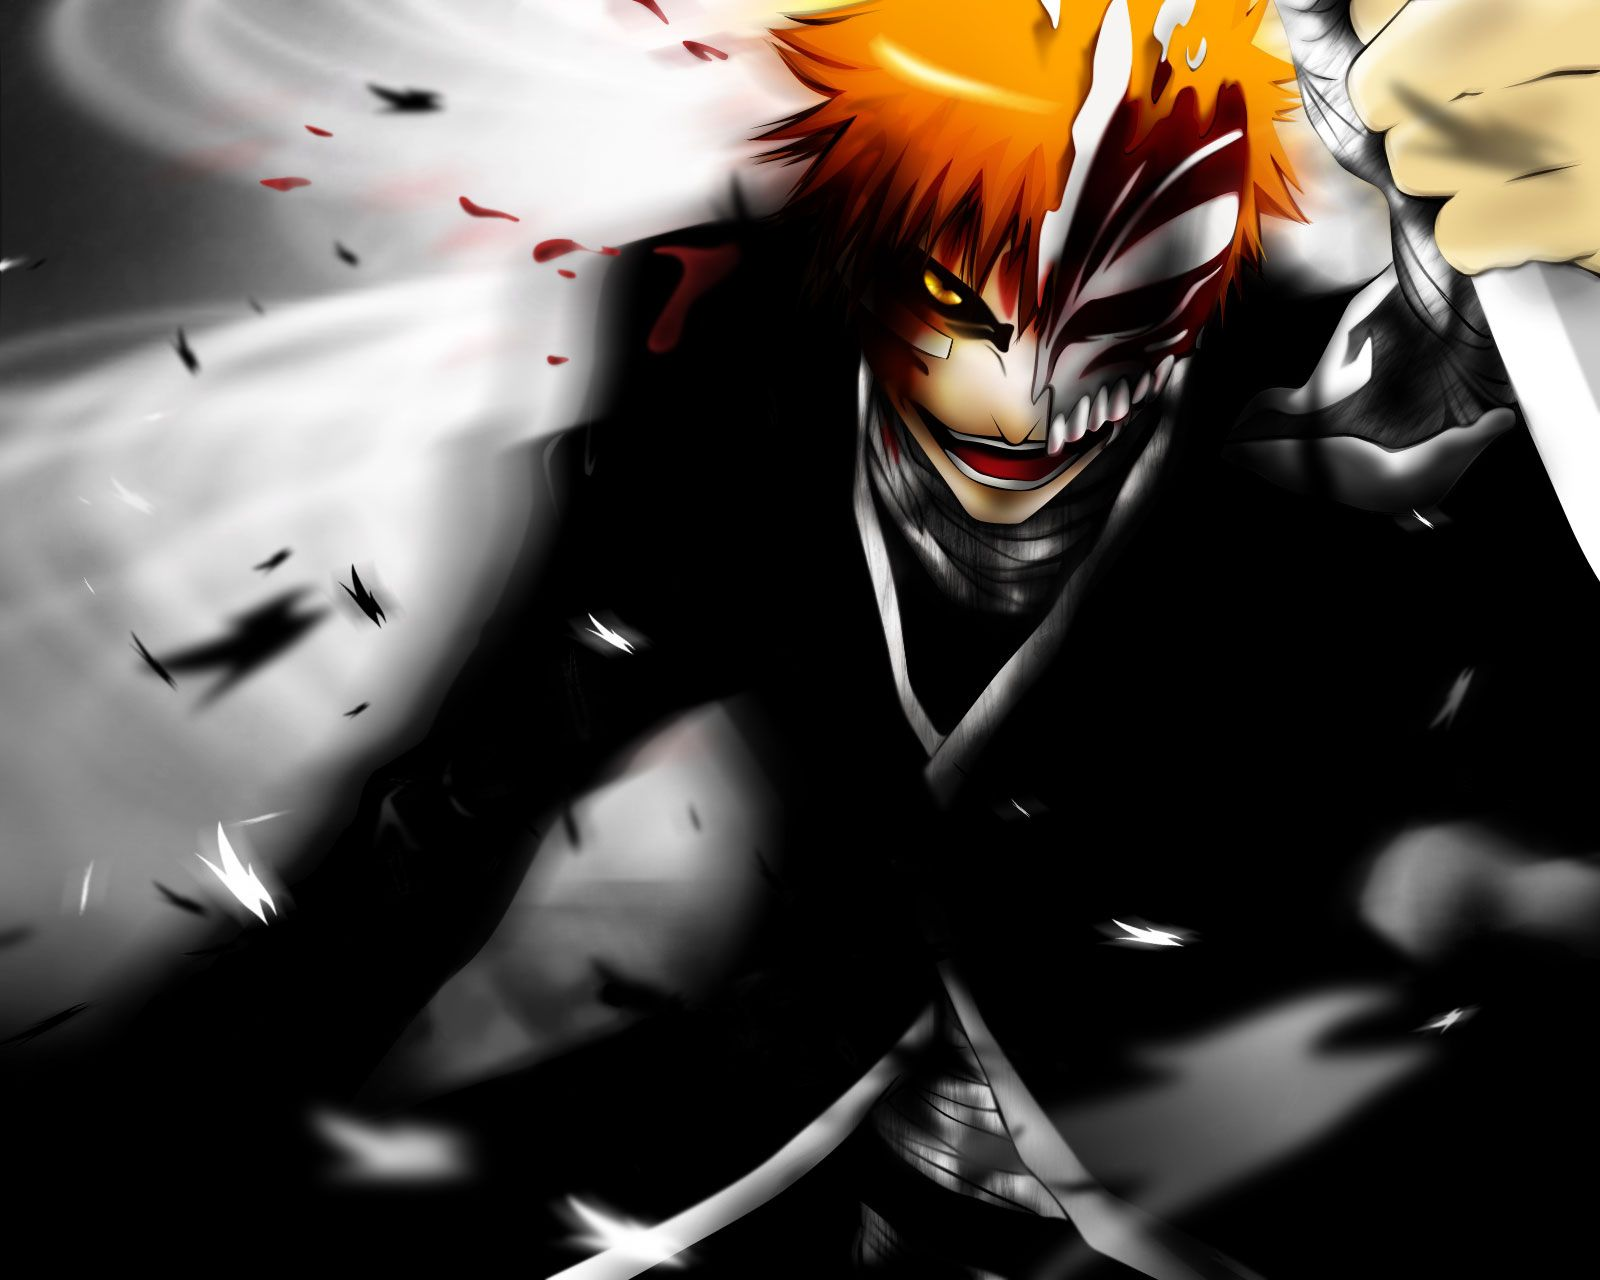 Bleach Wallpaper Best Desktop Hd Wallpaper Bleach Wallpapers